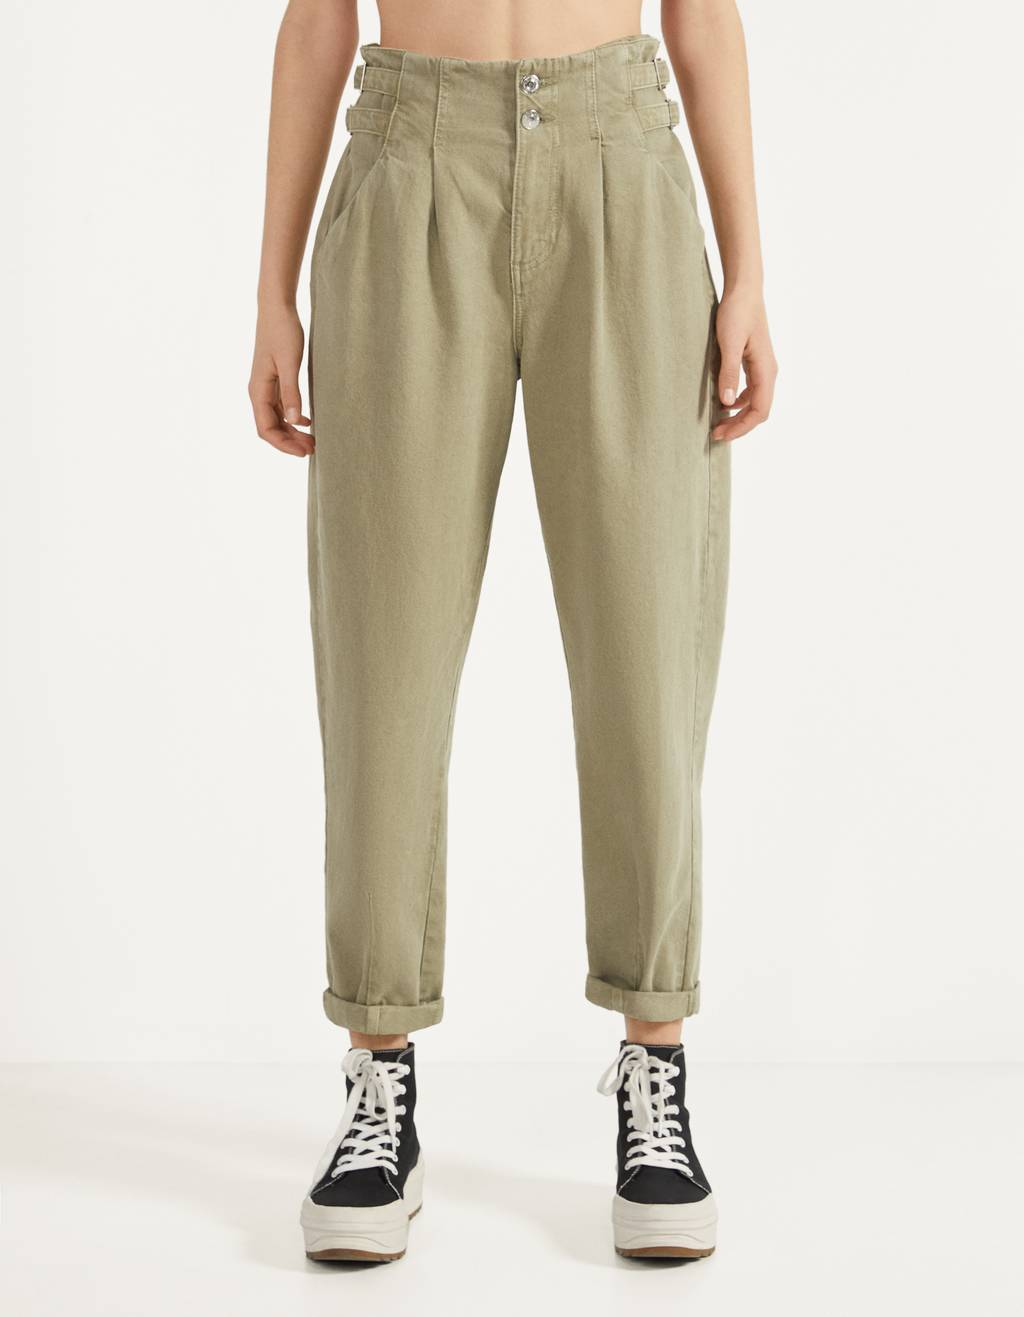 High-rise pants with belt loops